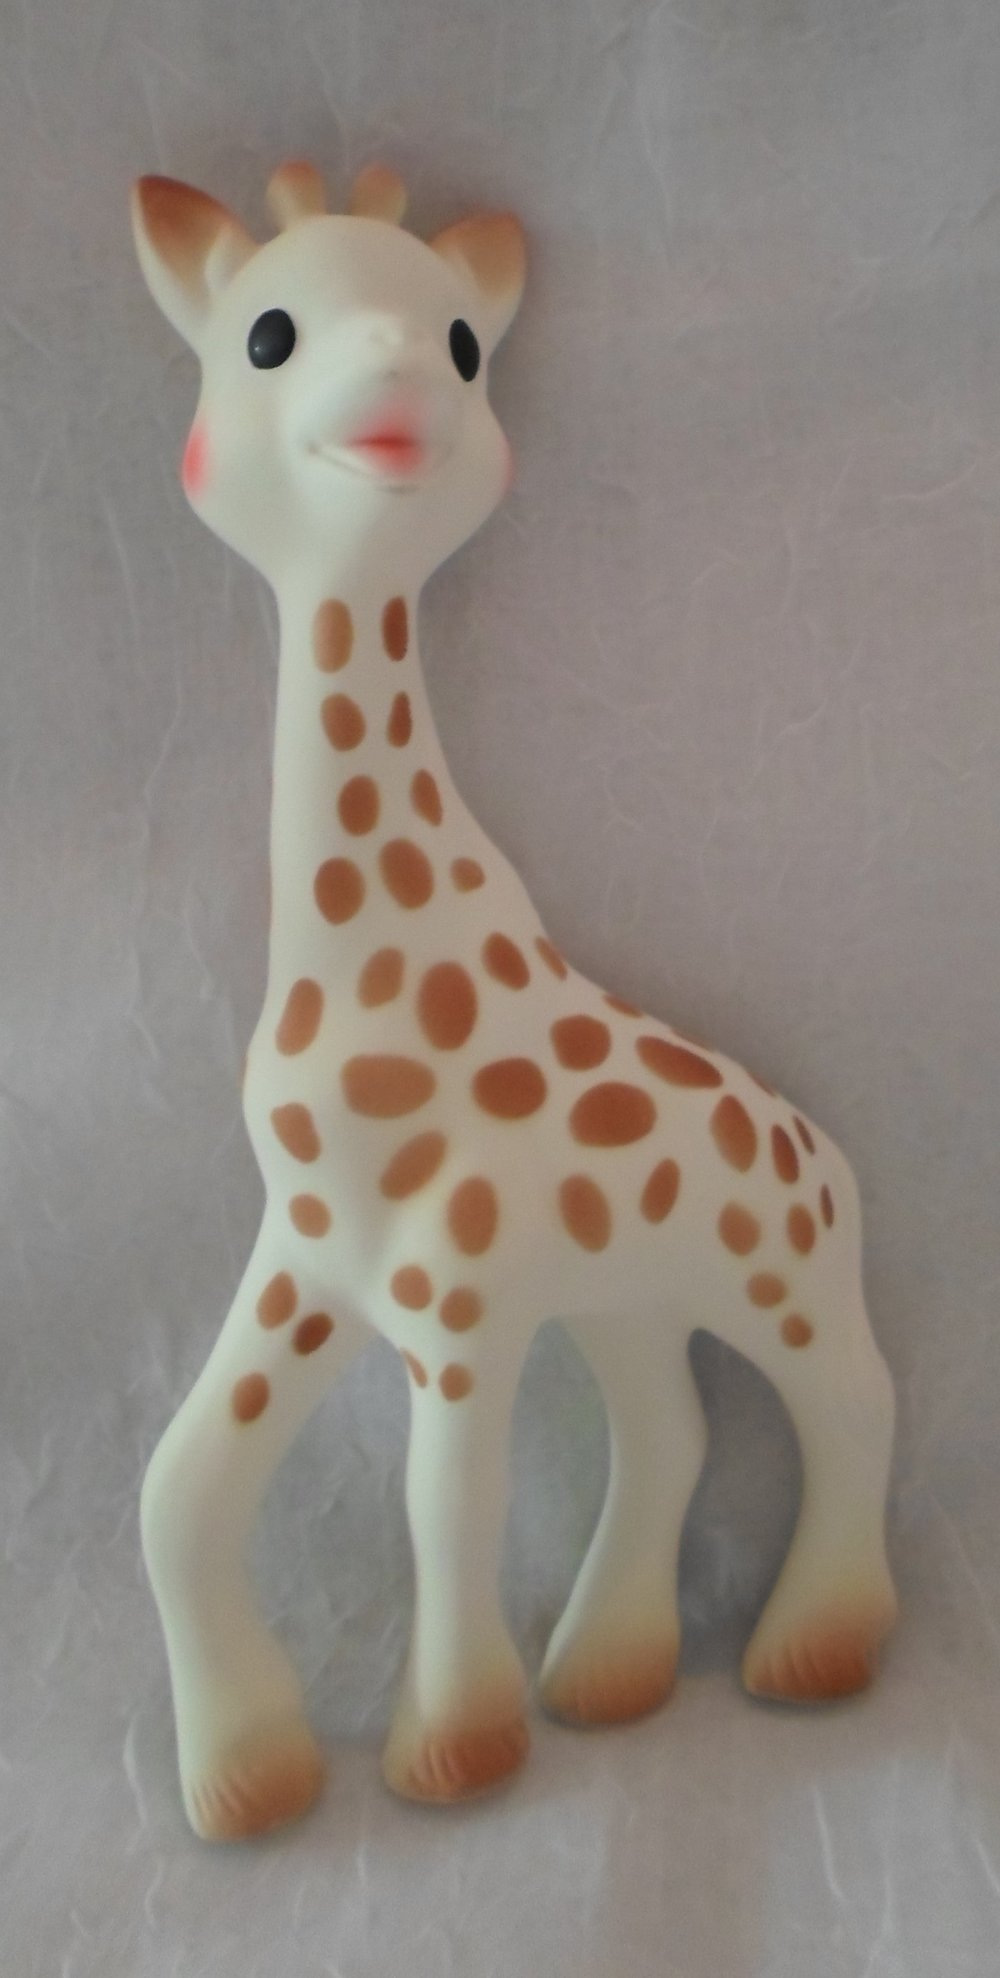 Sophie Giraffe Natural Rubber Teether Toy    $27.95    Wants 1  purchased